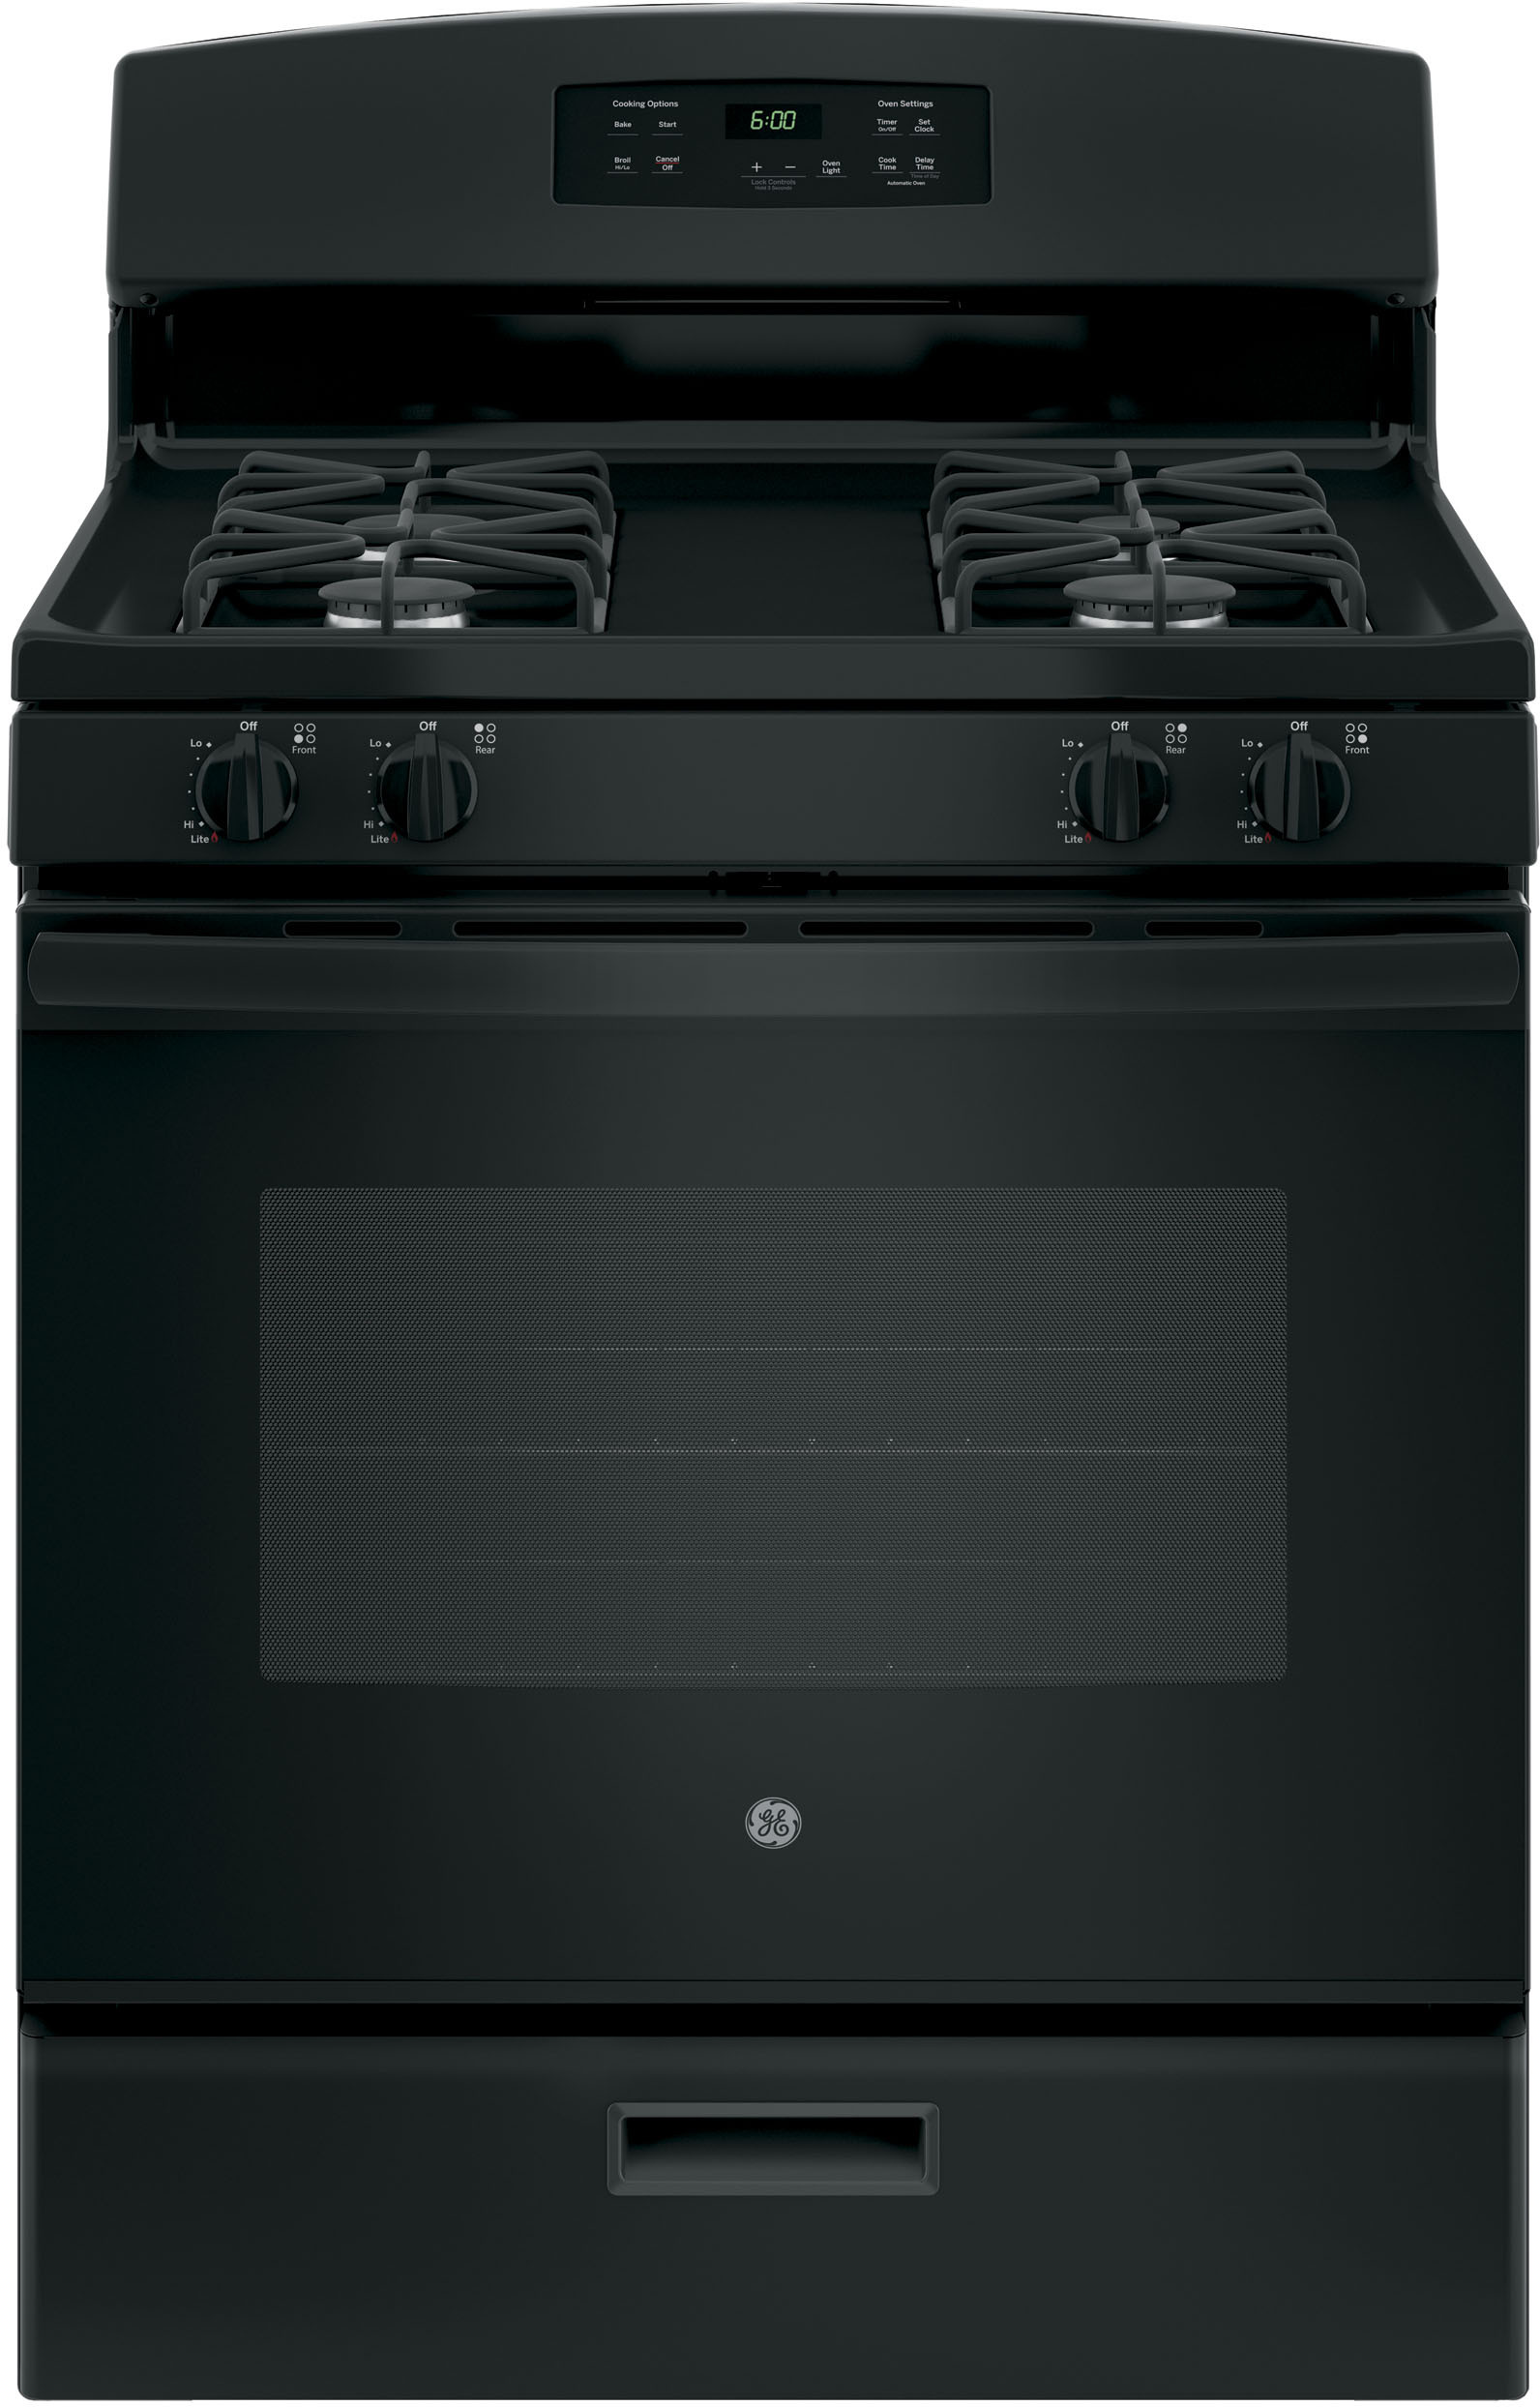 How To Clean Black Appliances Freestanding Gas Ranges